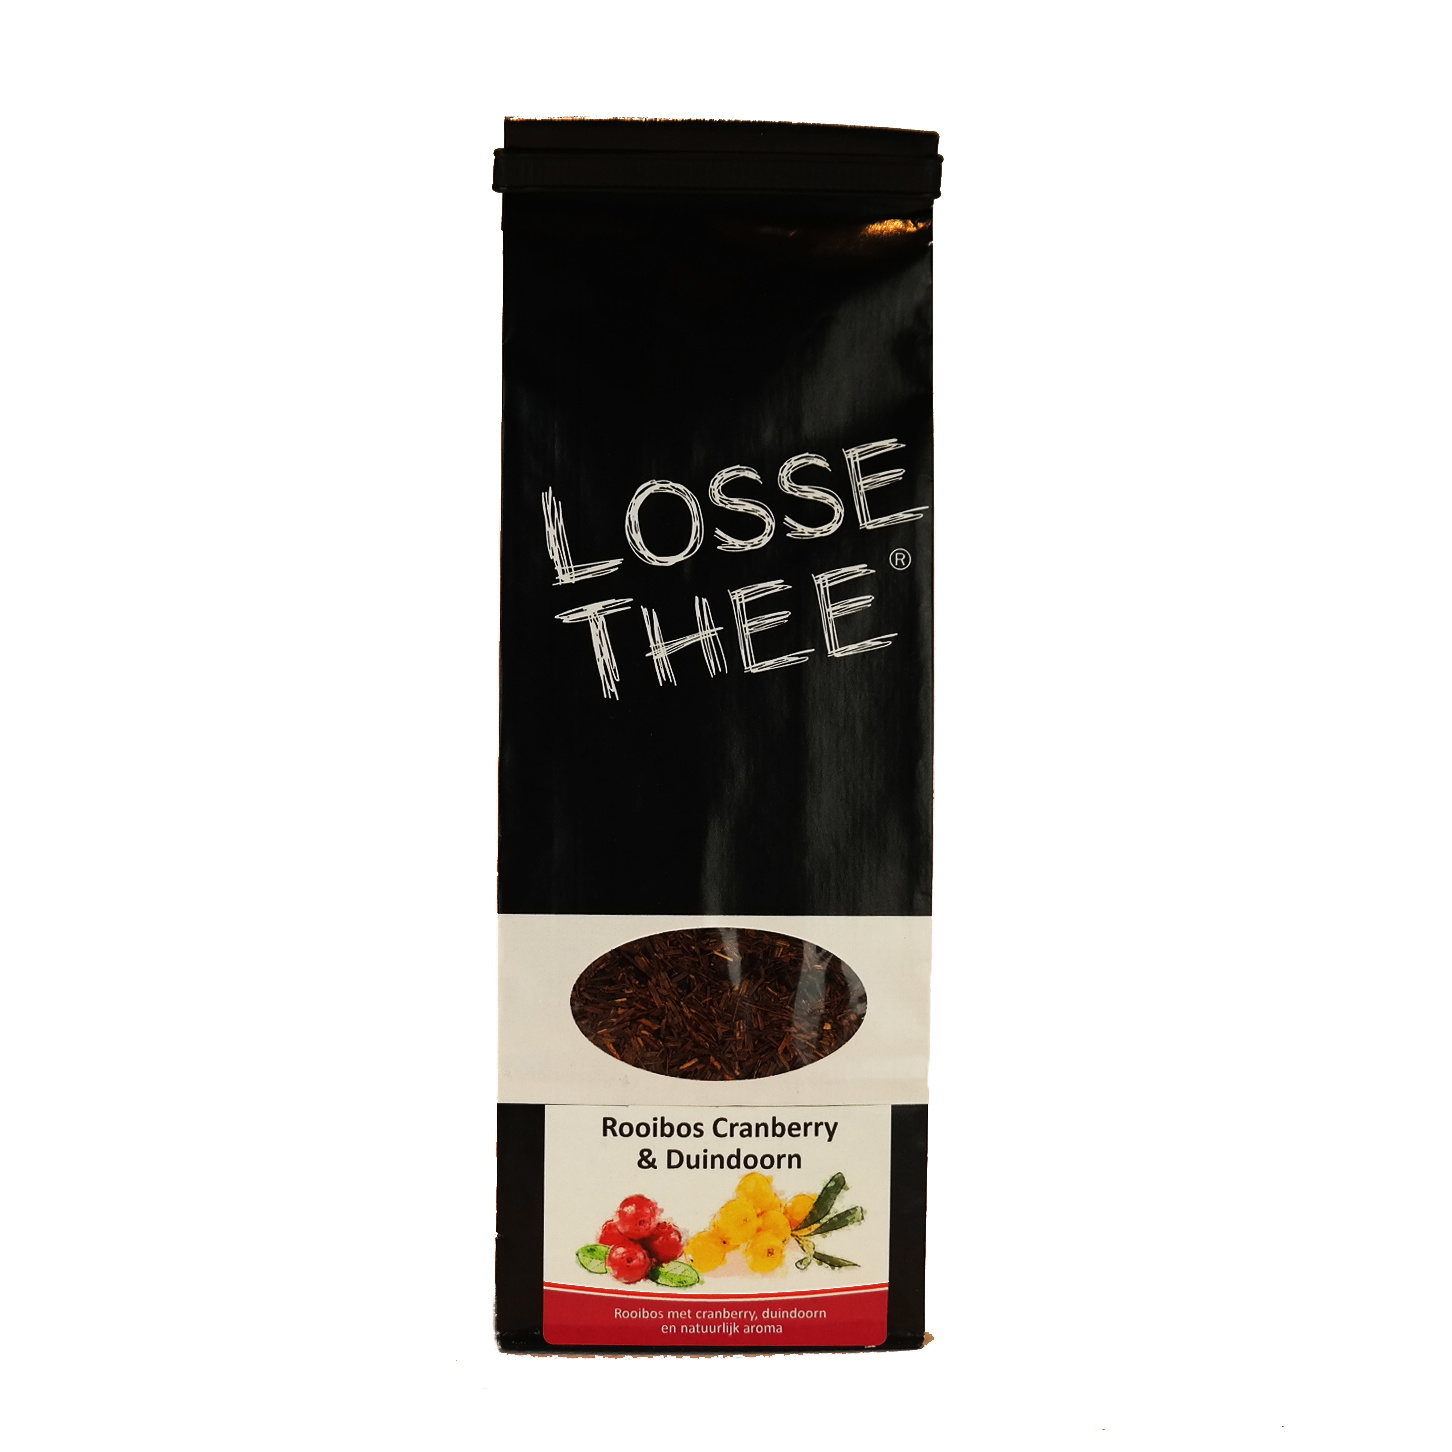 LOSSE THEE Rooibos Cranberry & Duindoorn